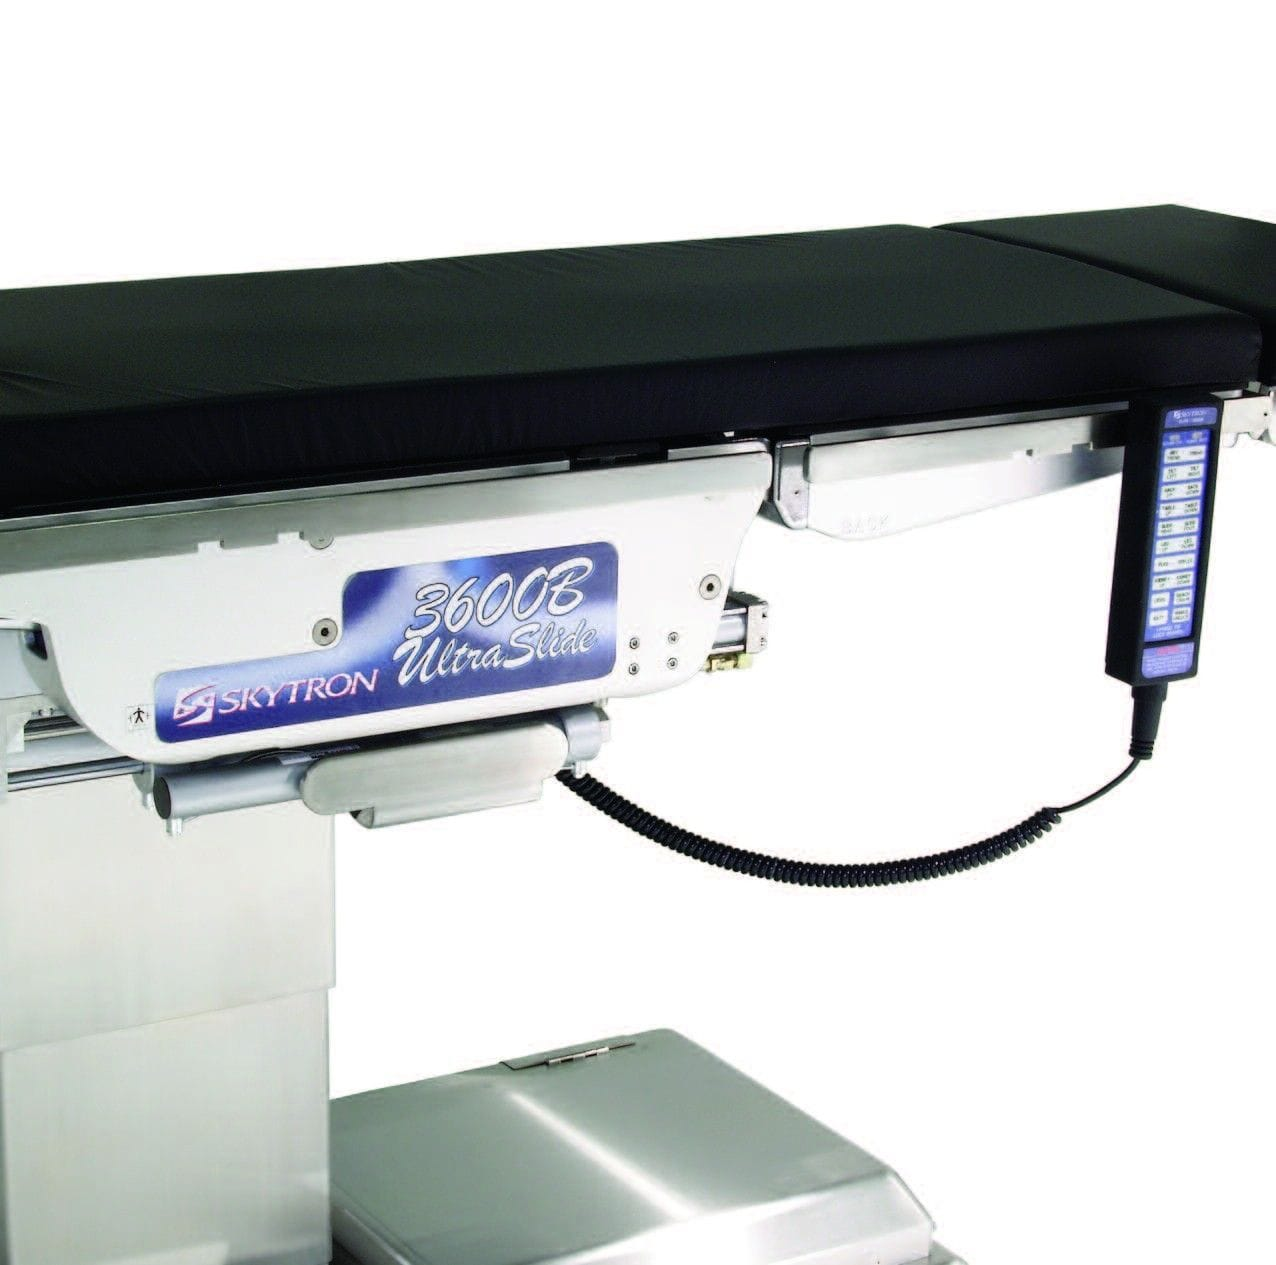 3602X Ultraslide Bariatric Operating Table